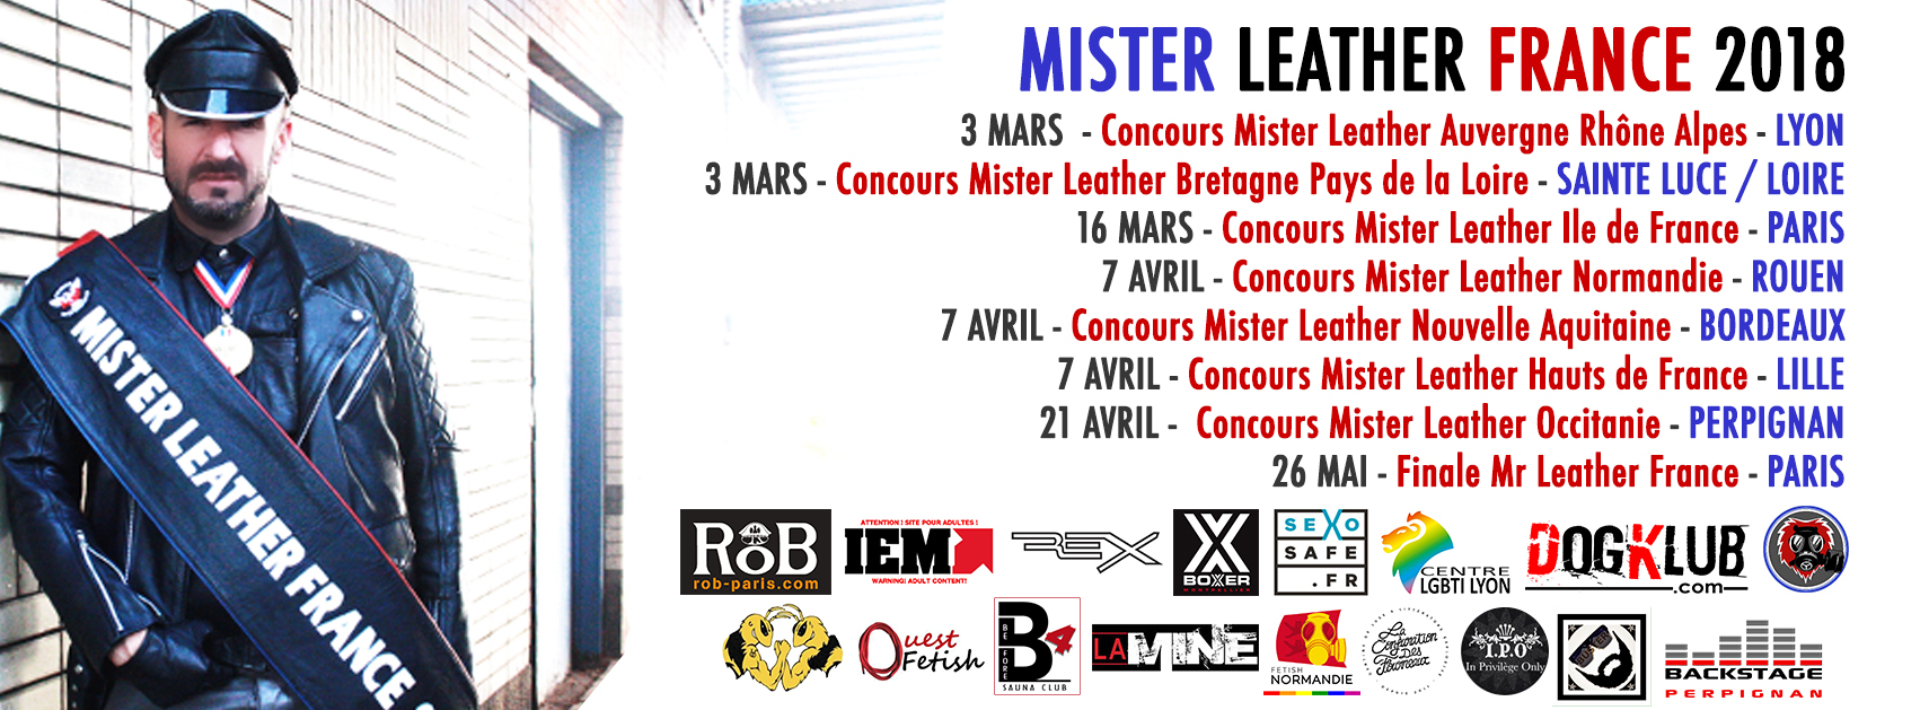 MISTER LEATHER FRANCE TOUR 2018